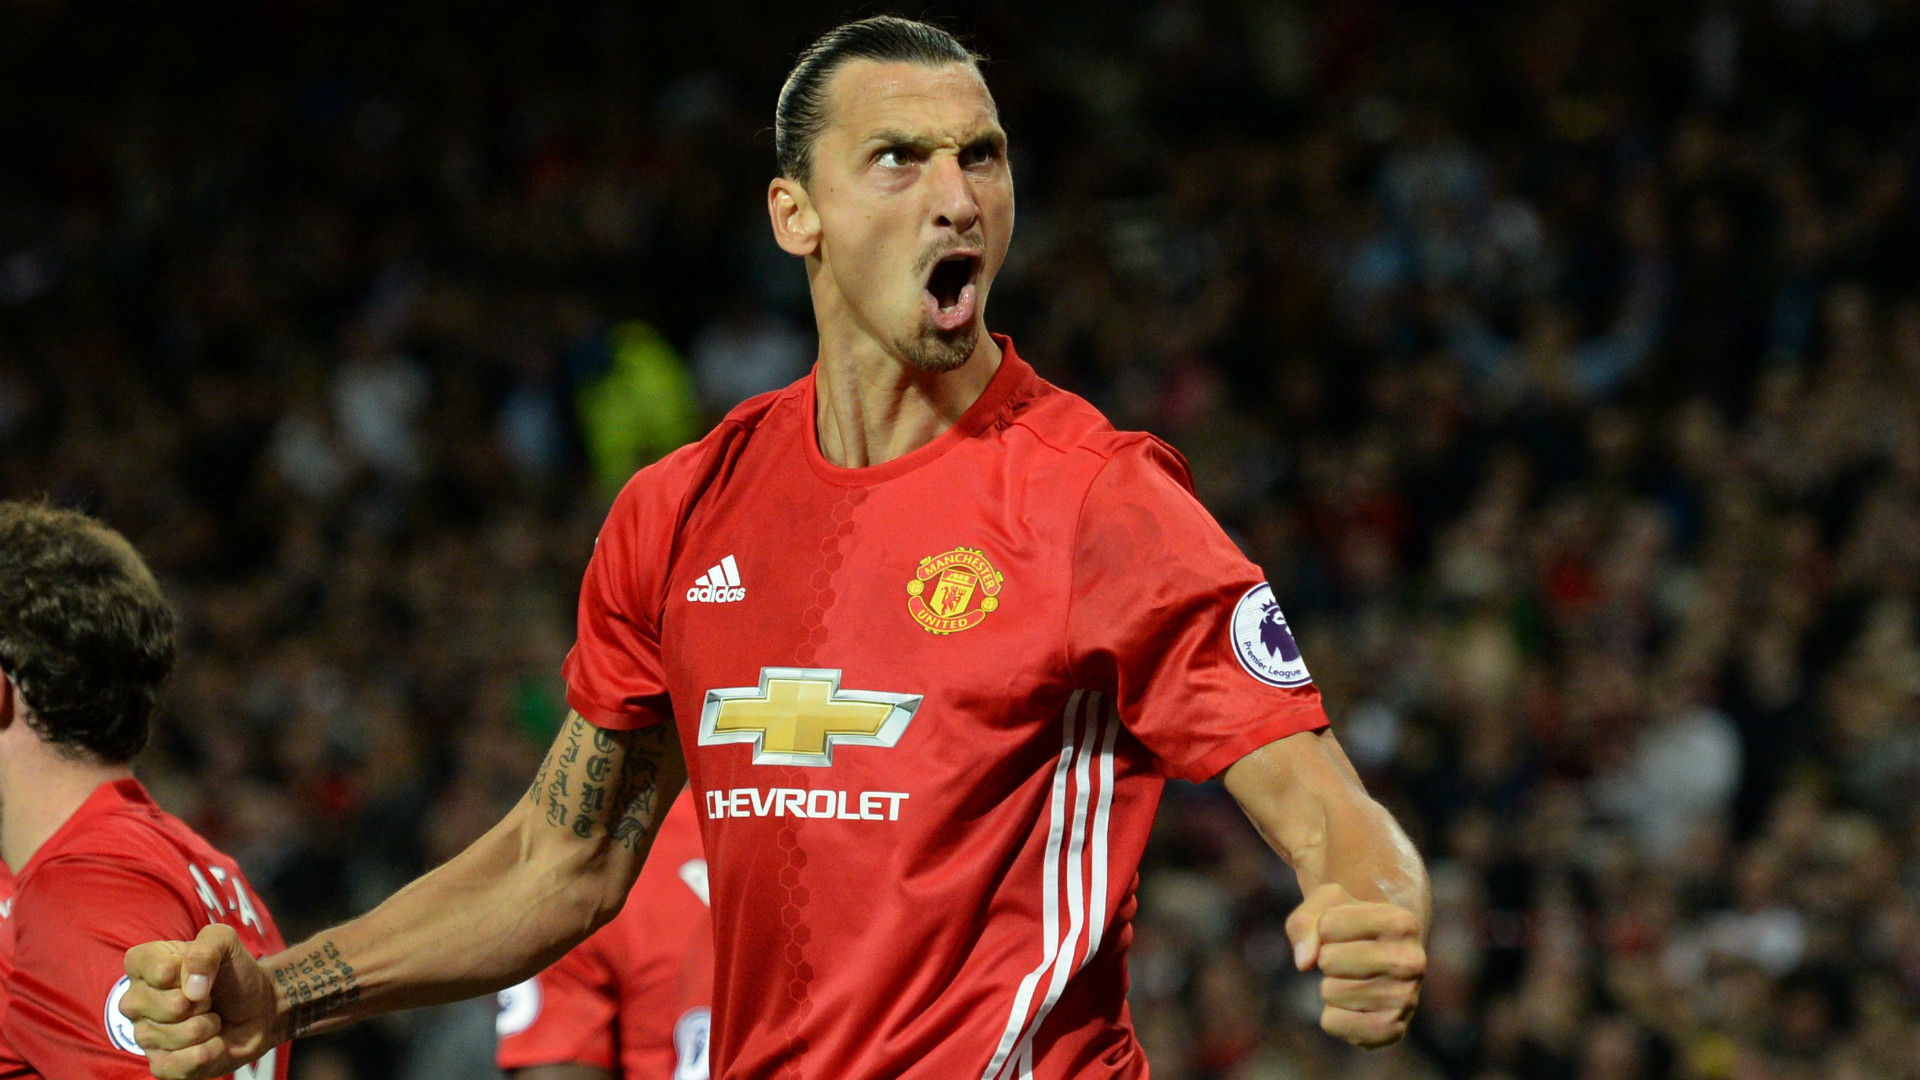 Thirty-four and still going strong - the secrets of Zlatan ... Zlatan Ibrahimovic